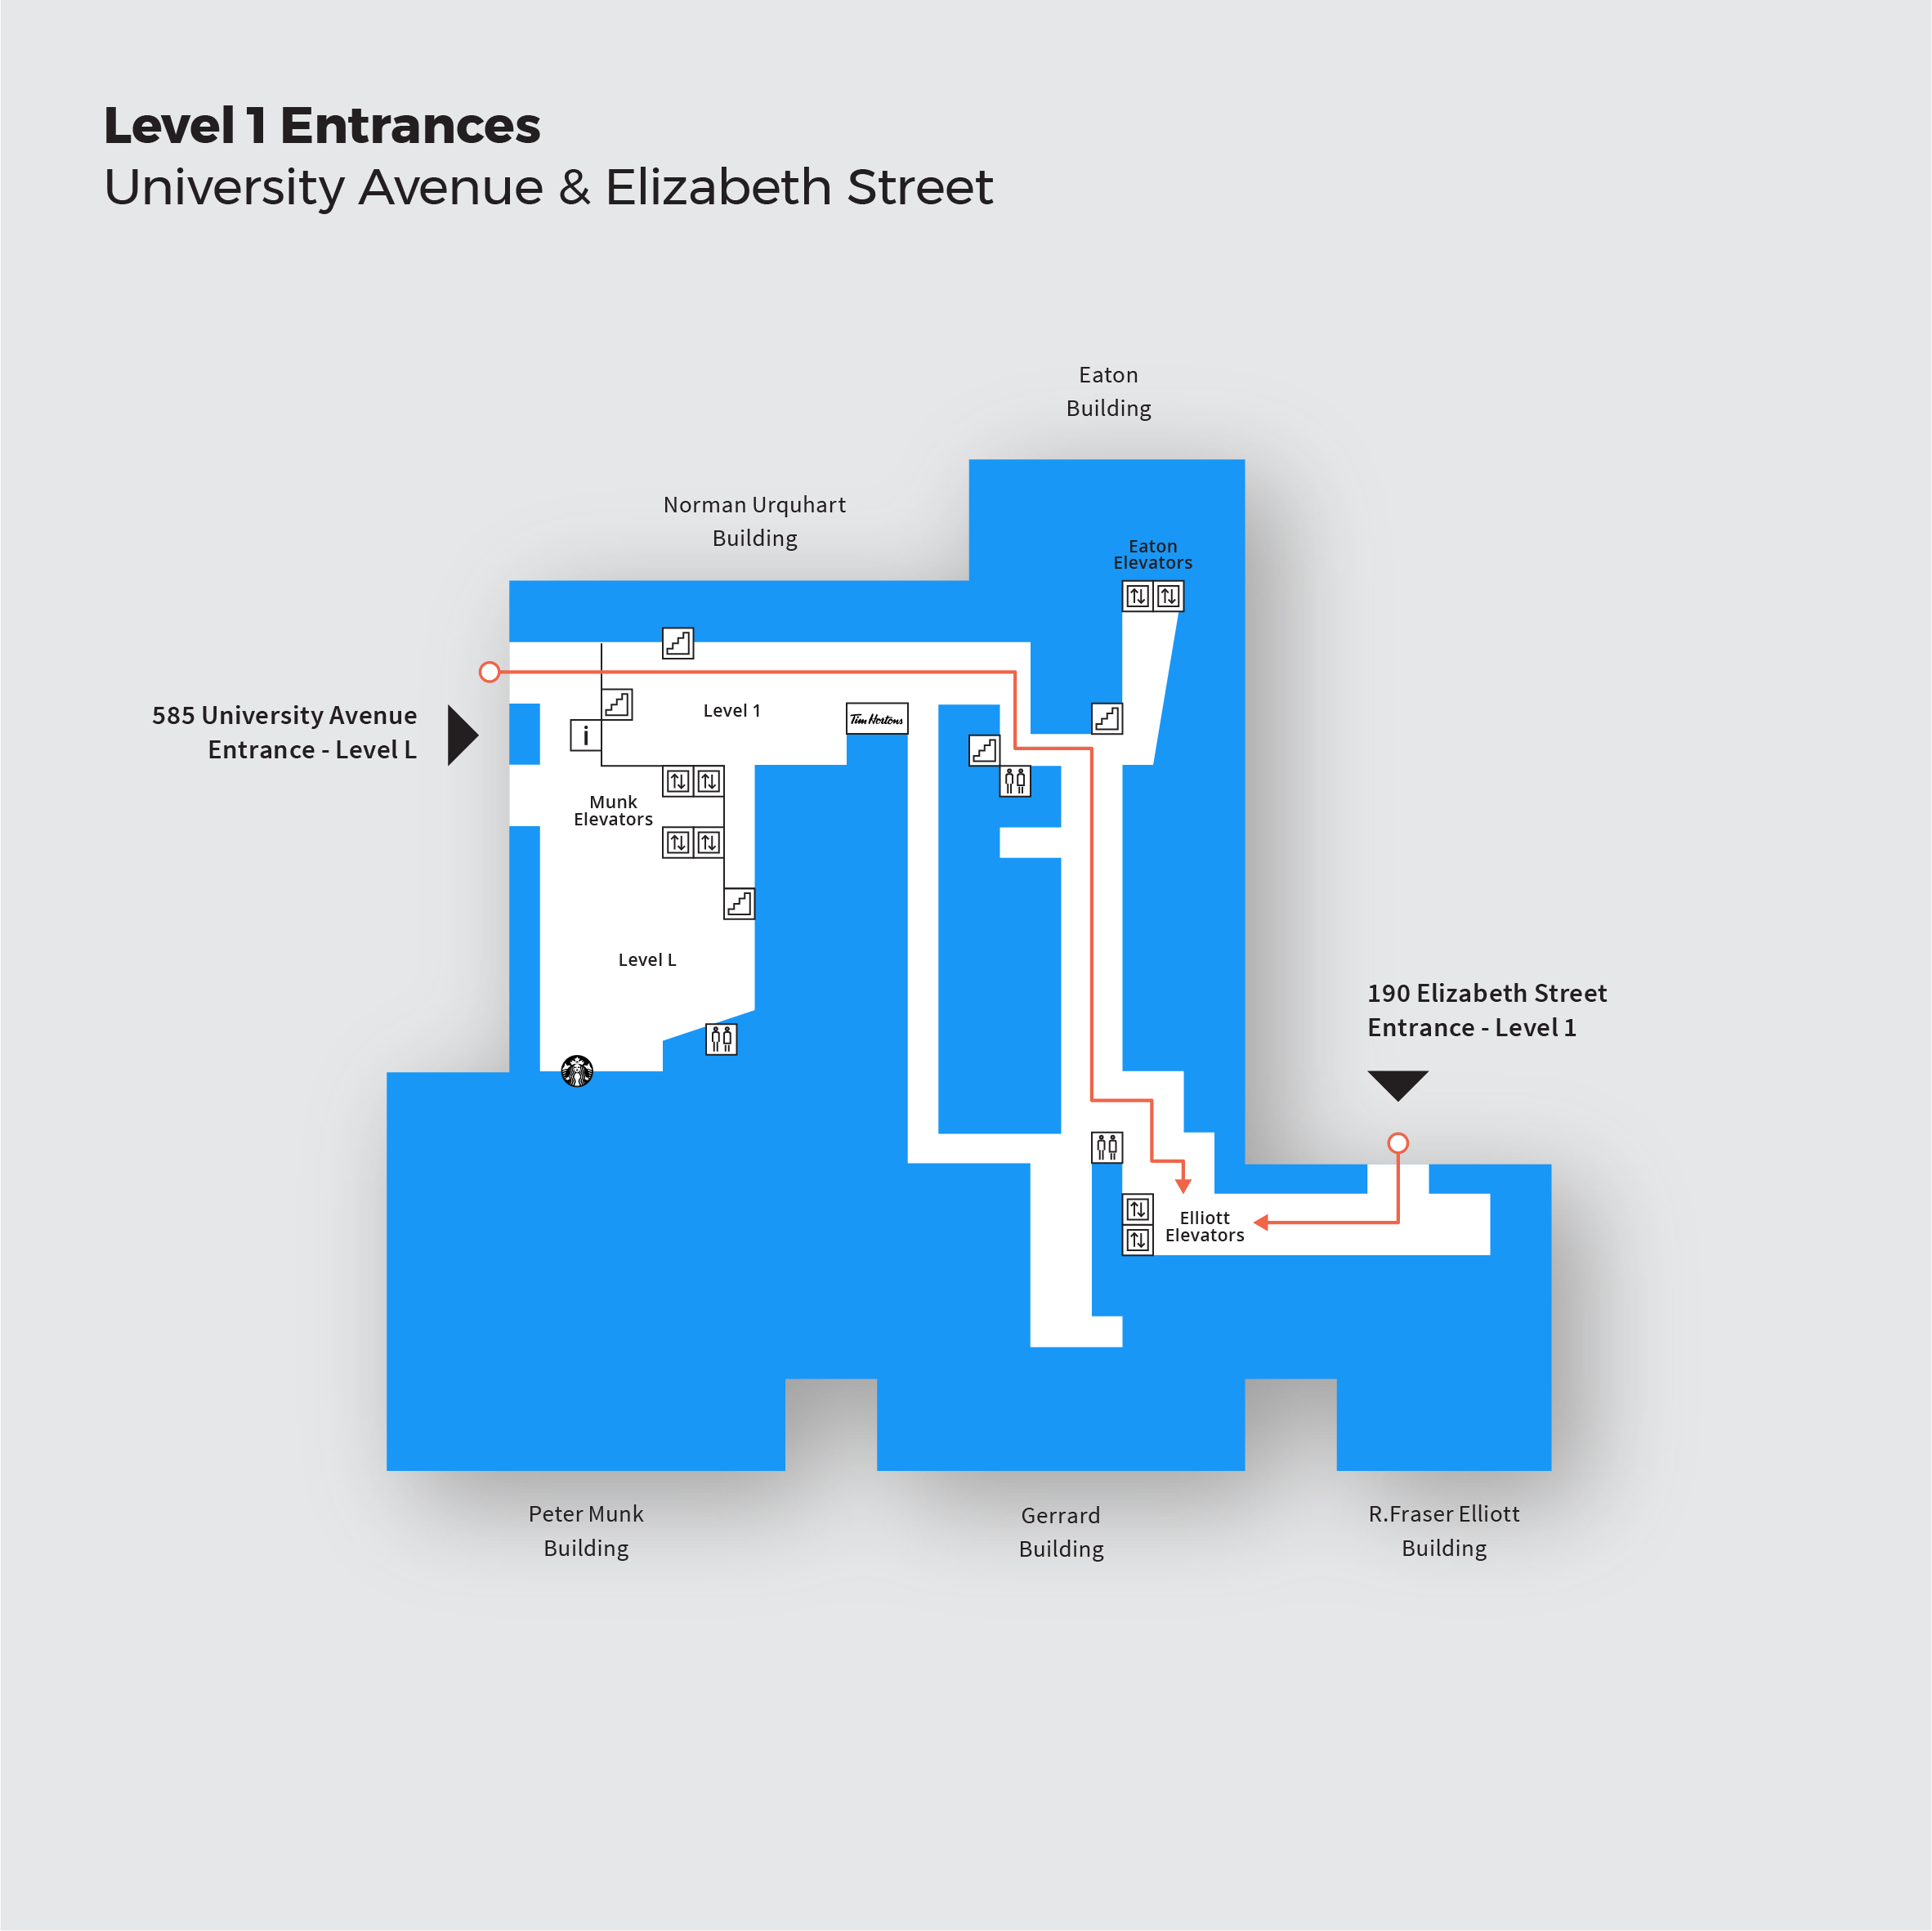 Level 1 Entrances